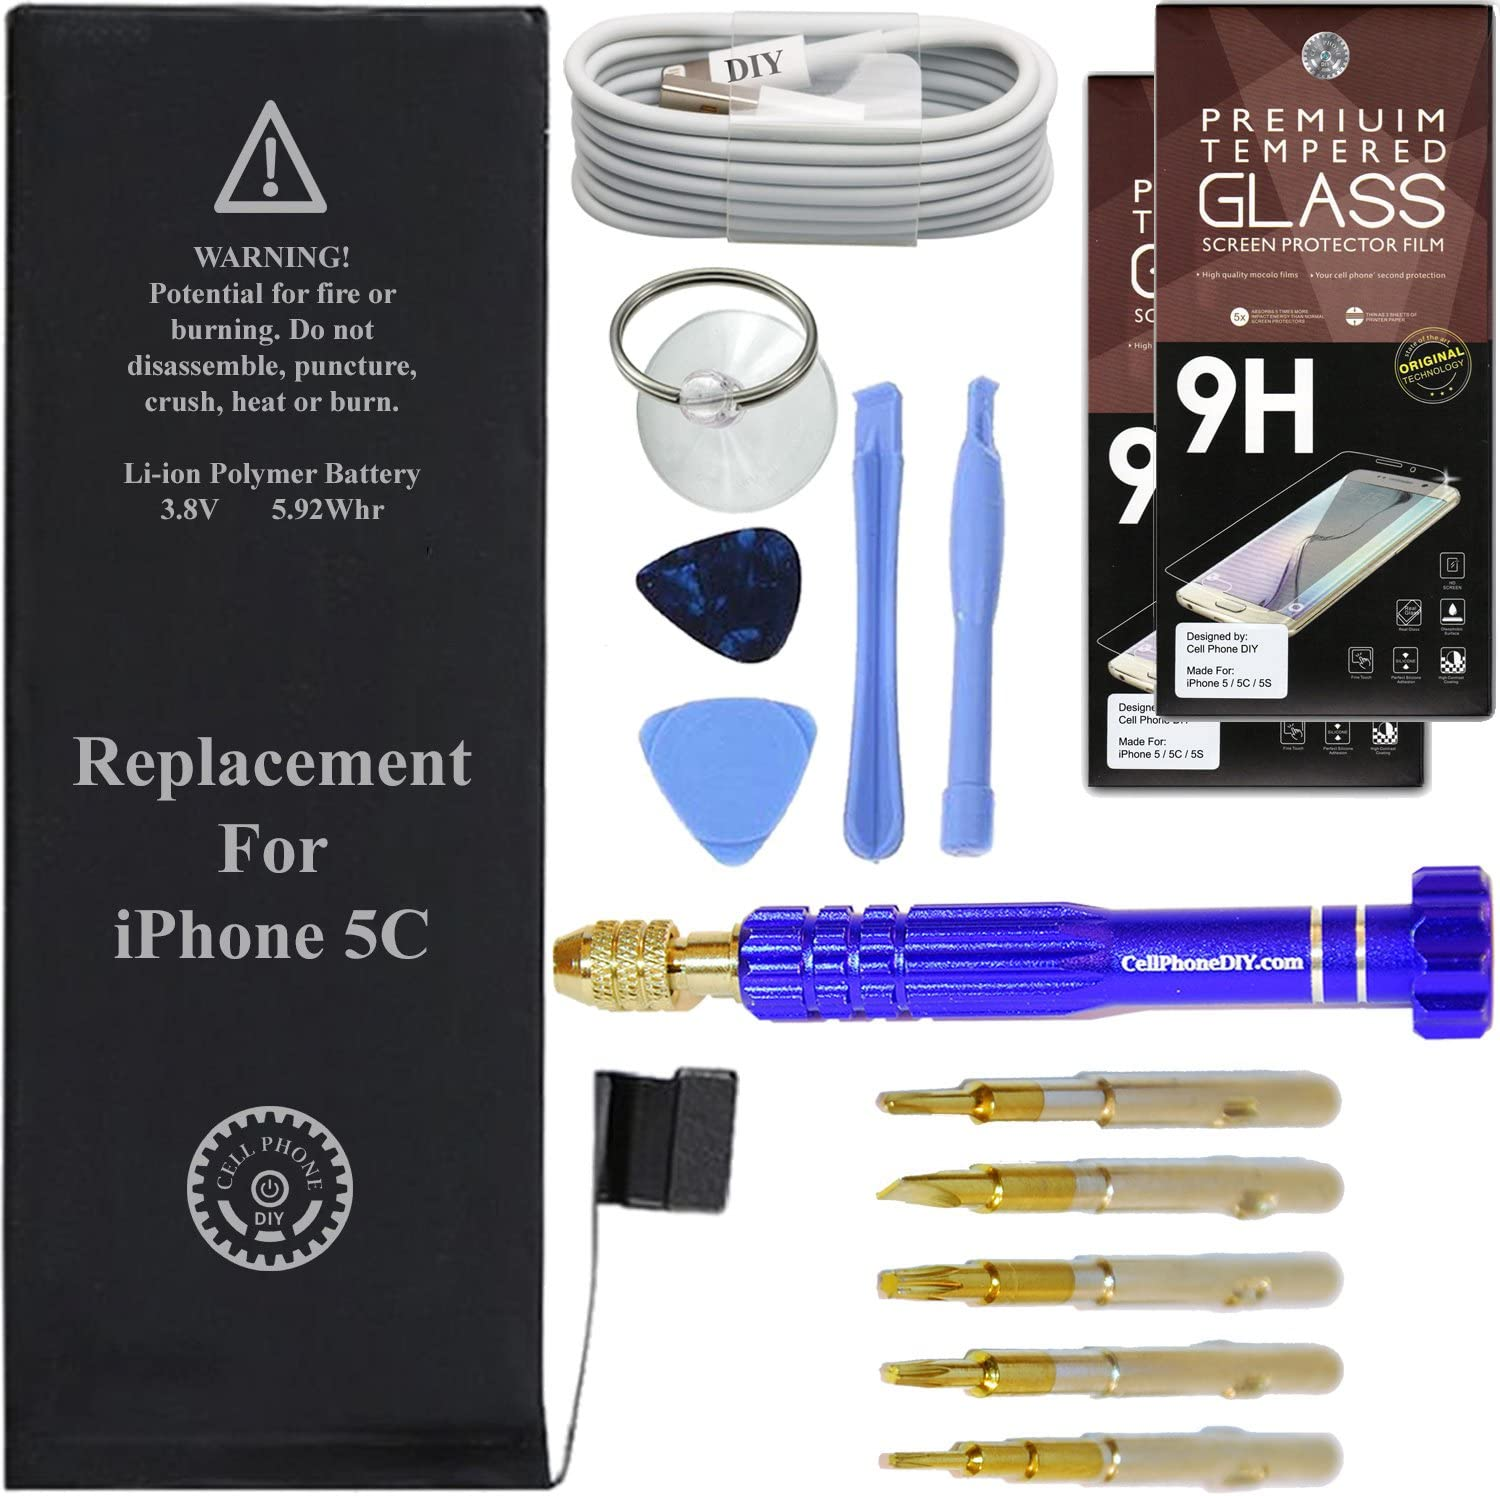 Cell Phone DIY Battery Replacement Kit Compatible with iPhone 5C Complete with Tools and Protectors